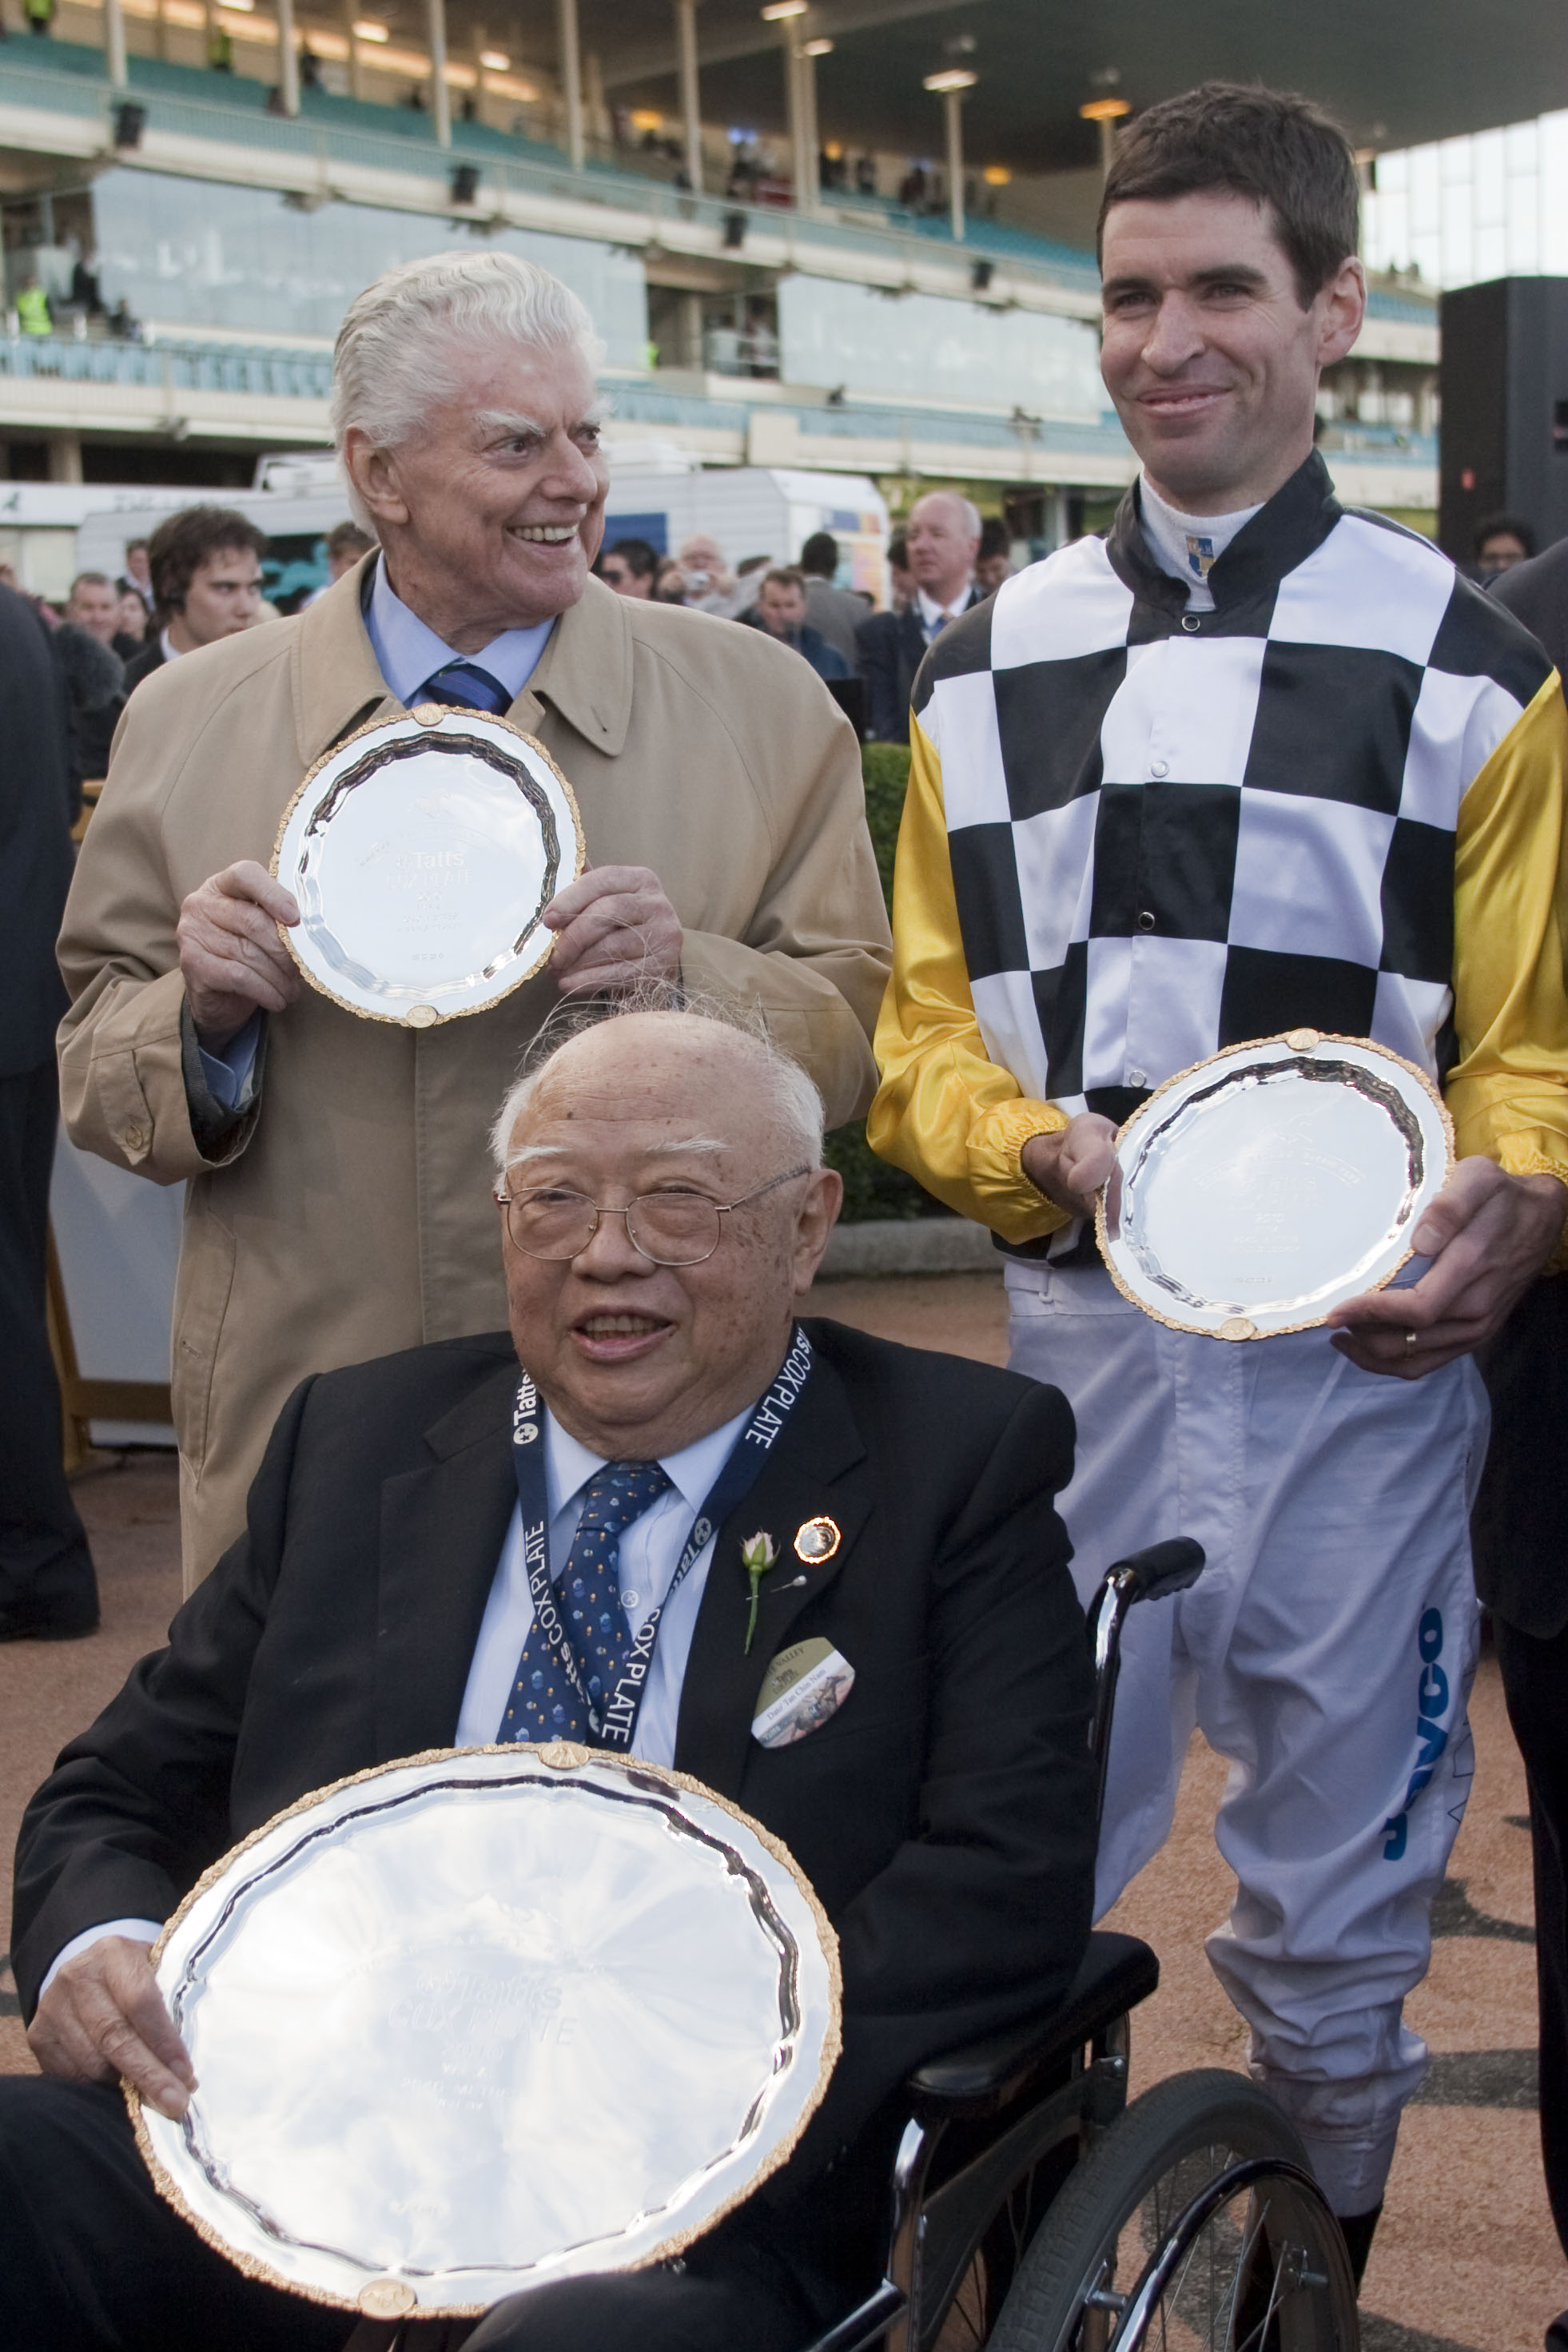 Dato Tan, the late Bart Cummings & jockey, Steven Arnold after So You Think's second Cox Plate victory in 2010.